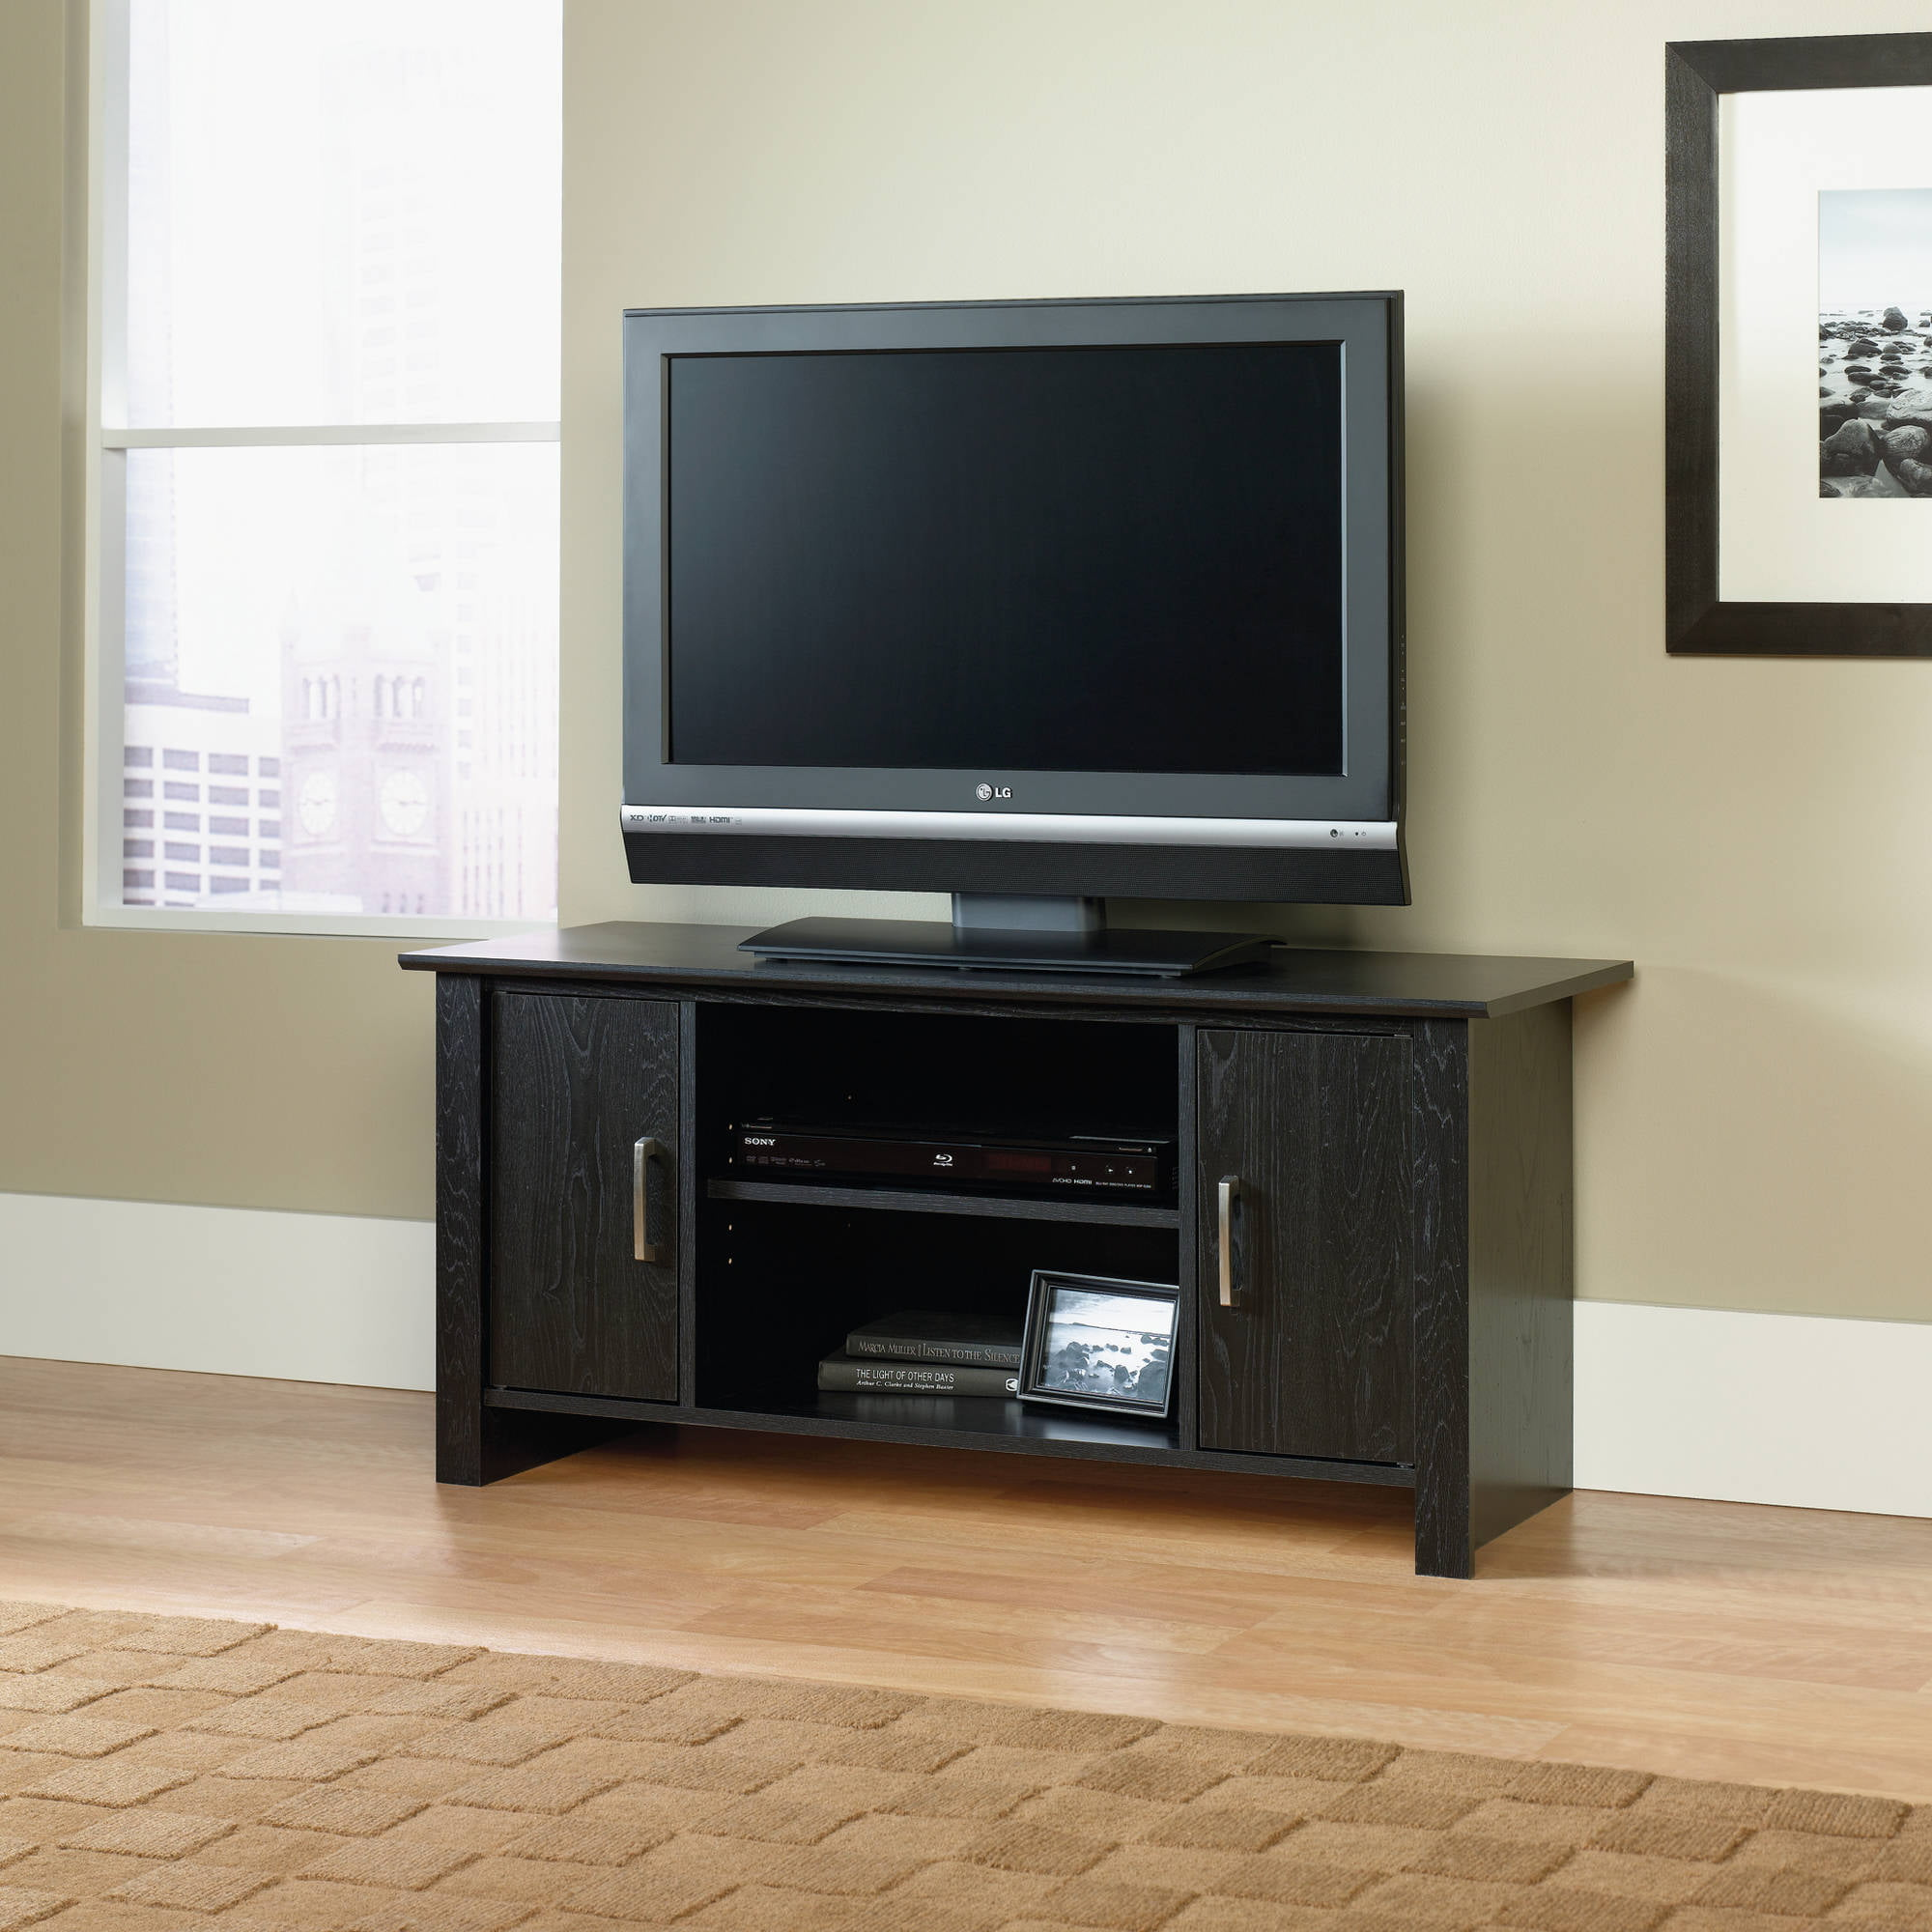 Mainstays Tv Stand For Flat Screen Tvs Up To 47 Multiple Finish Com